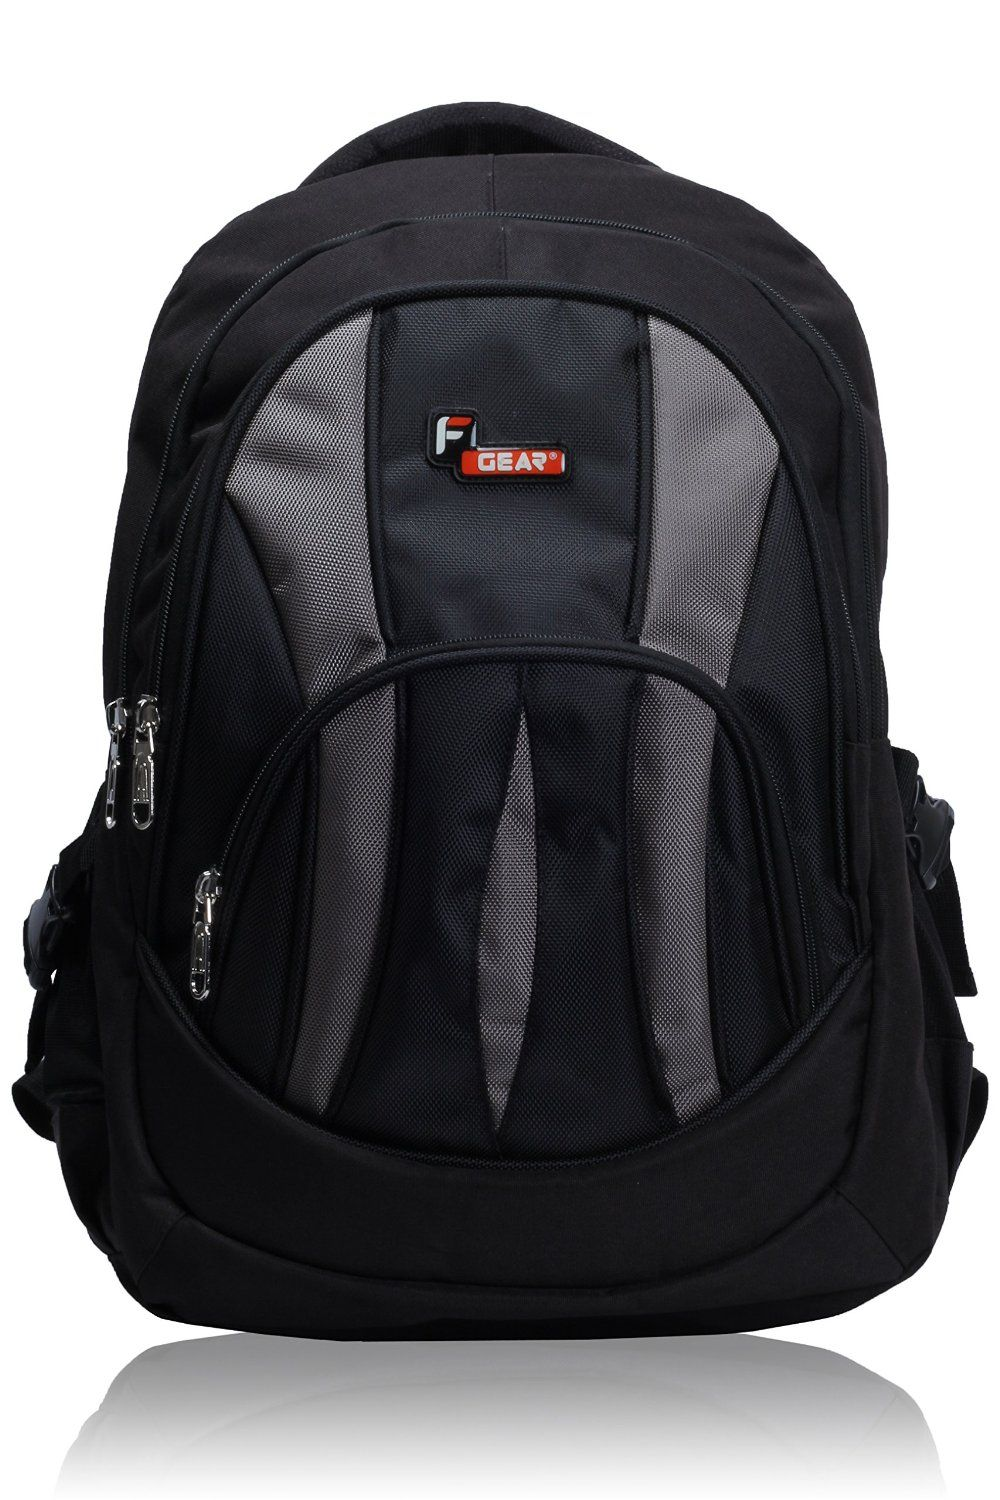 a94d54061916 Buy F Gear Backpacks Bags At Rs 675 Lowest Online Price From Amazon India.  Get Upto 62% Off On All Bags. You Can Use It For Your Laptop Also.